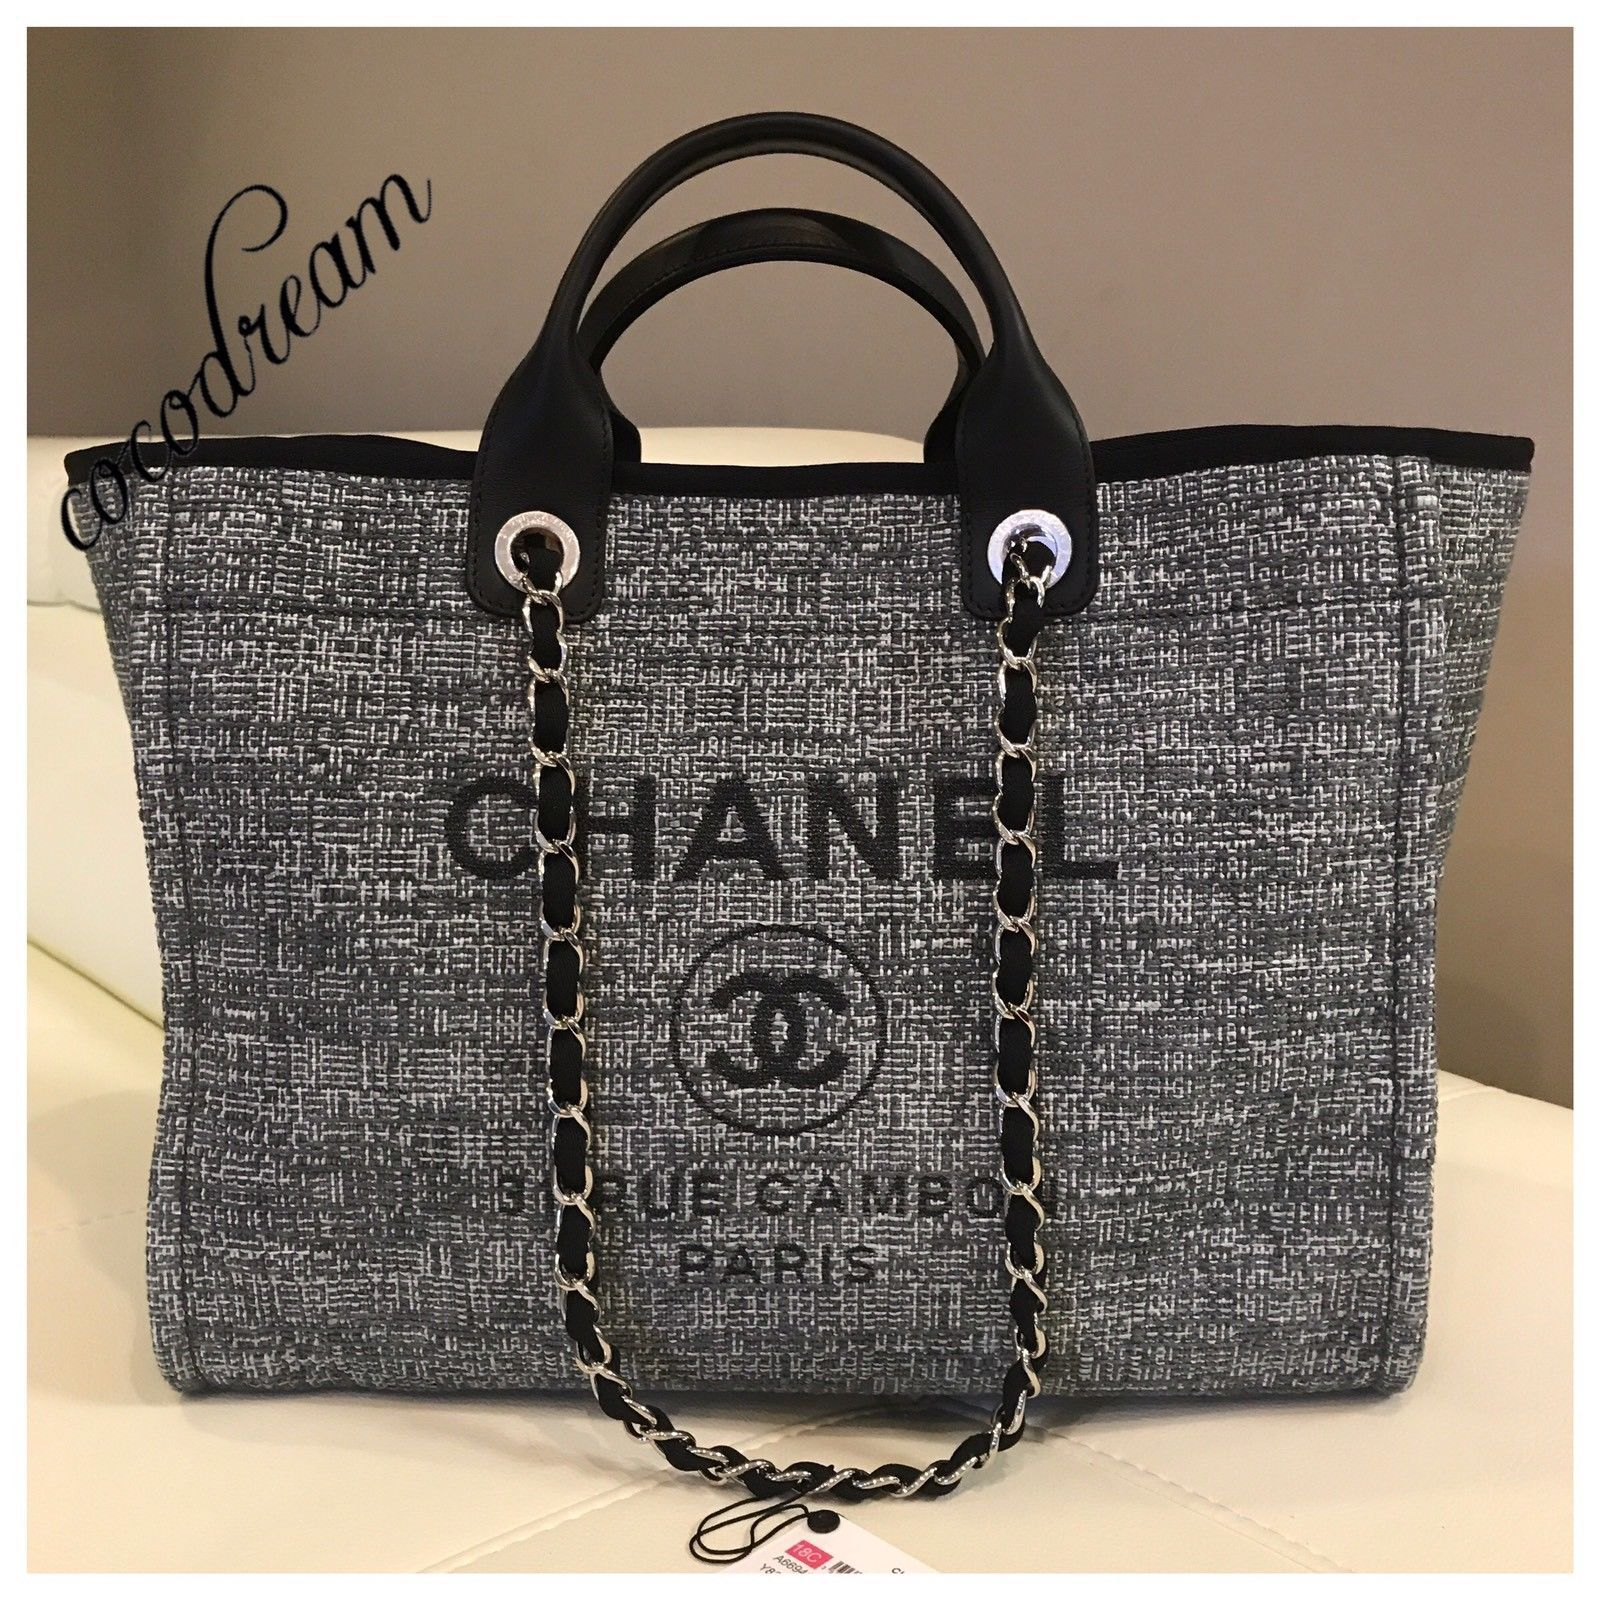 It is the large size perfect for all your needs. This gorgeous bag is a  classic deauville tote bag in Gary charcoal color with black timming and  black ... 4c1baa3716318